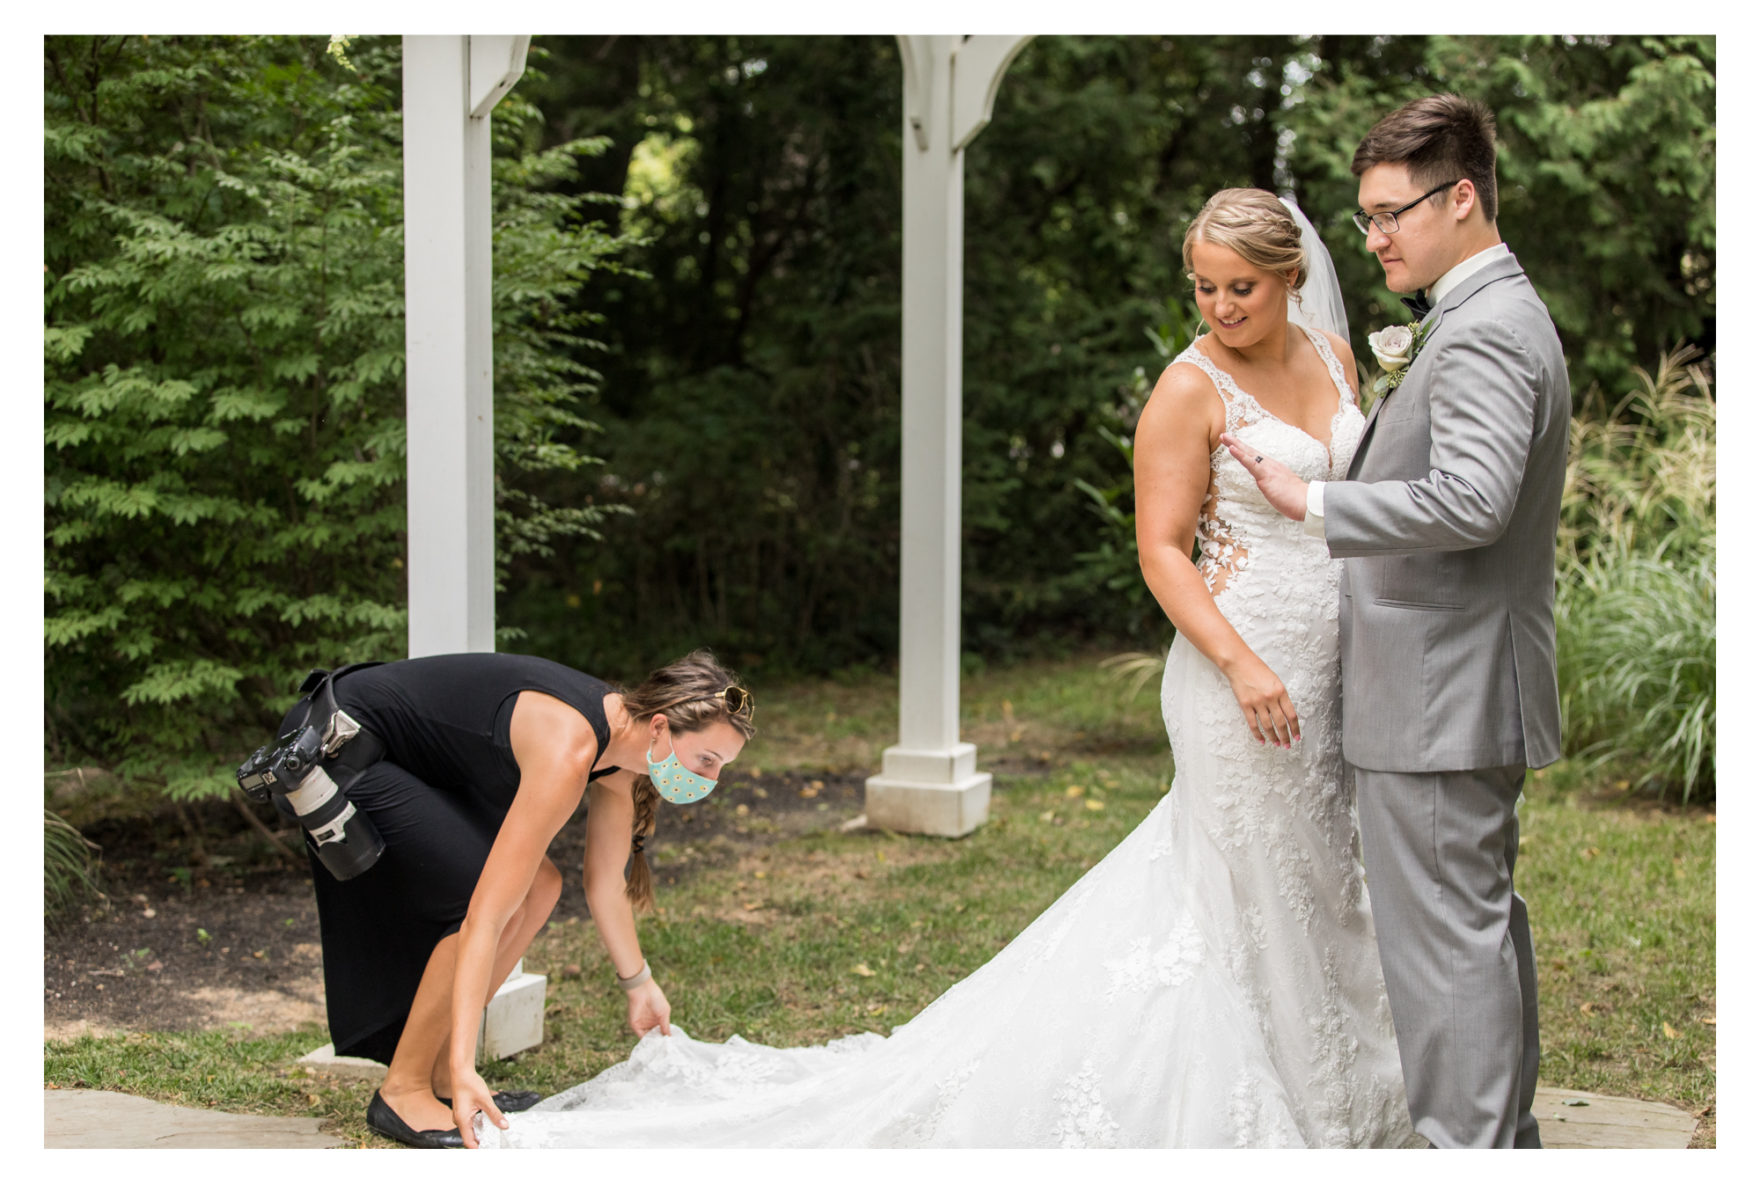 Wedding Photographer Behind the scenes. maryland wedding photographer. wedding veils. wedding dress. dress fluffing. second photographer 2020